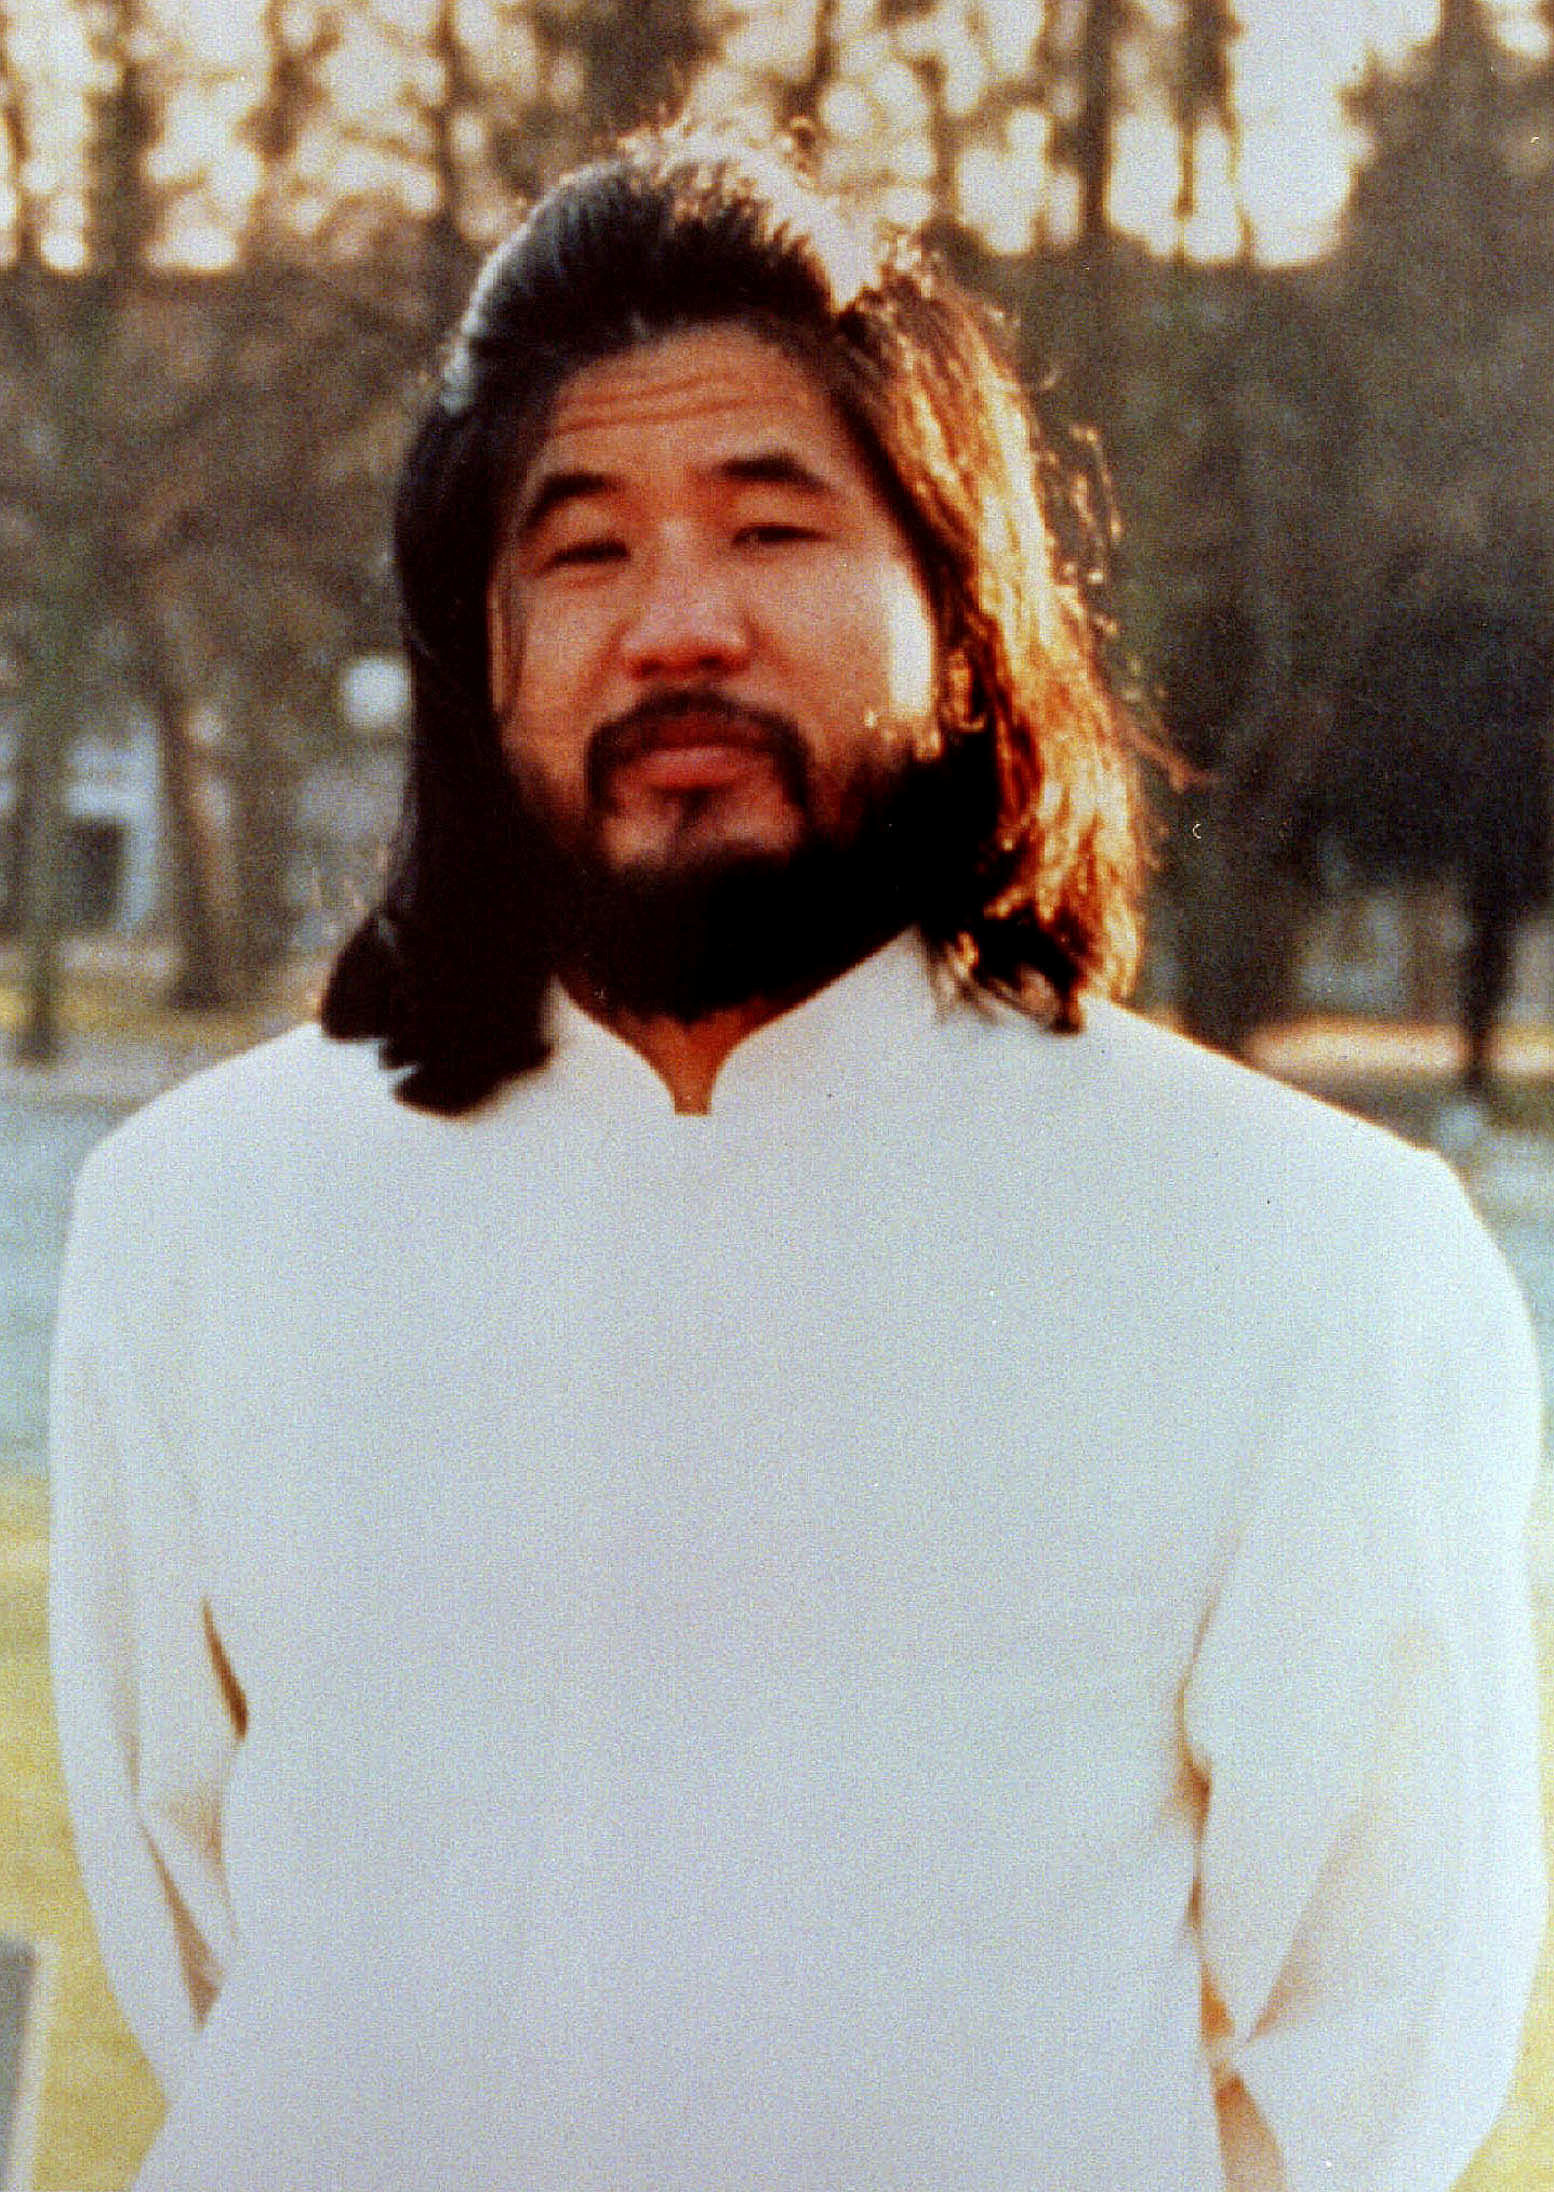 Former leader of Japanese doomsday cult Aum Shinri Kyo Shoko Asahara poses in this undated file photo.